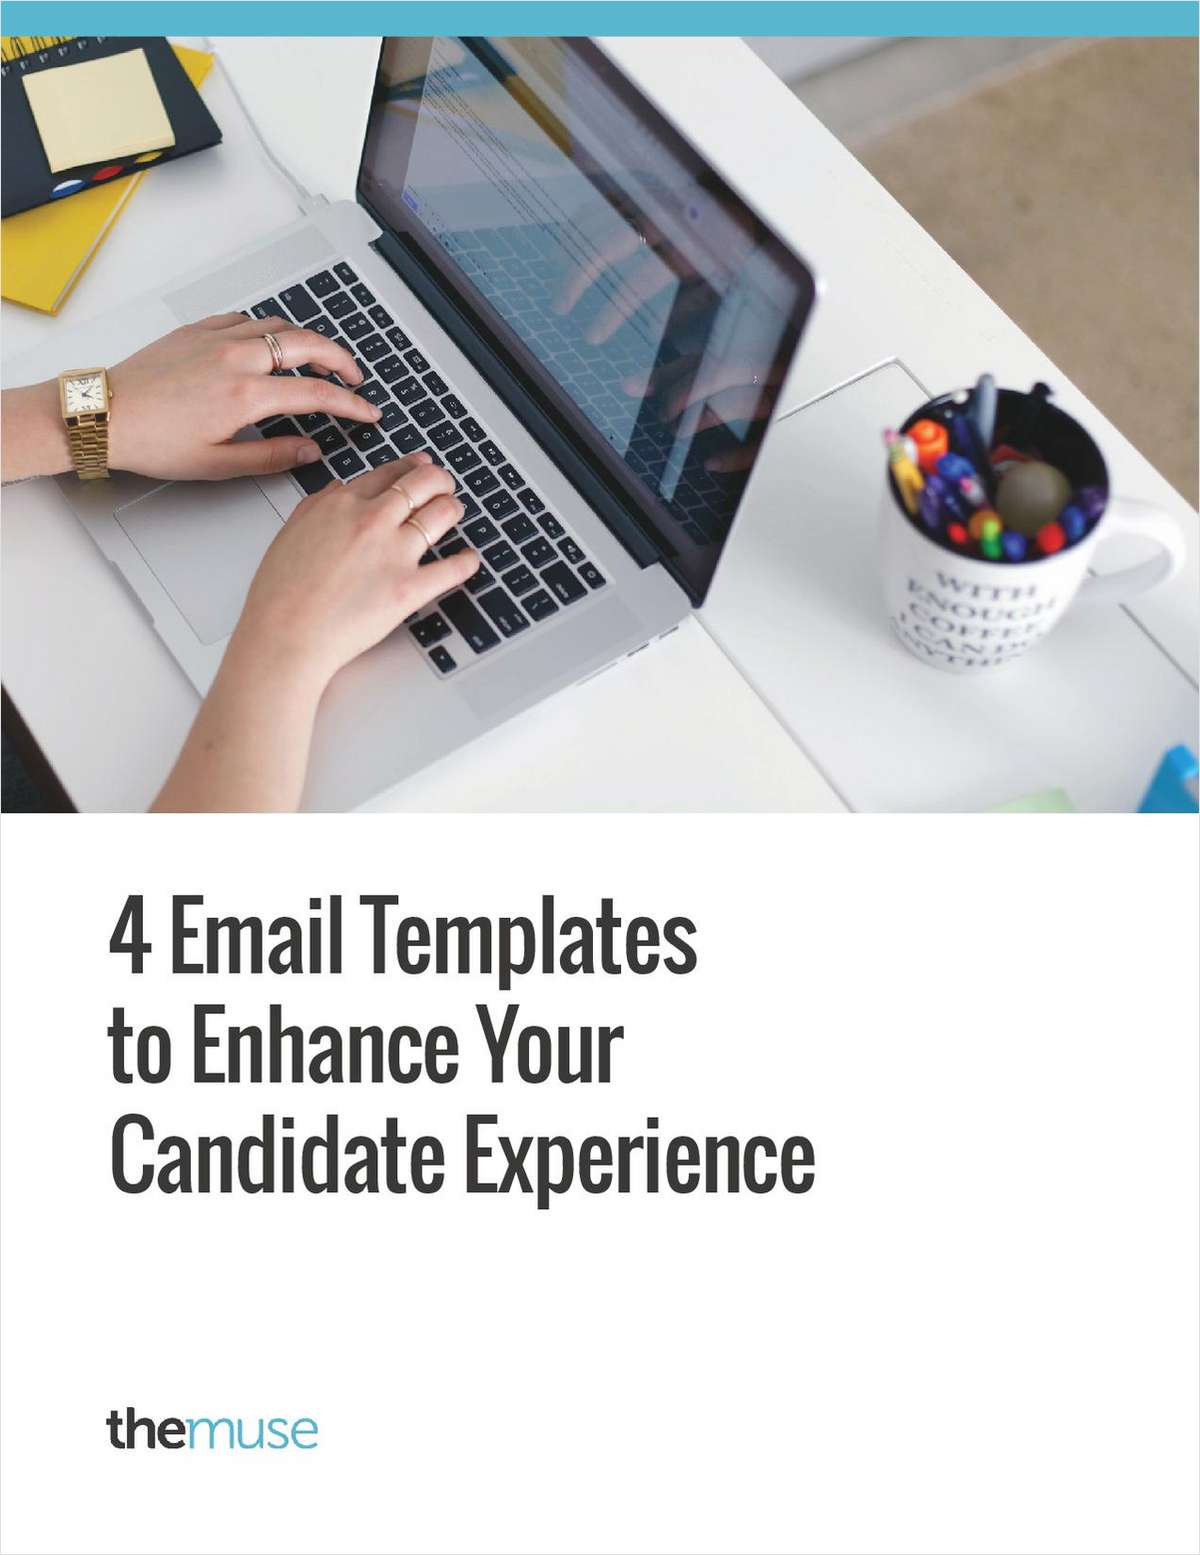 4 Templates to Enhance Your Candidate Experience